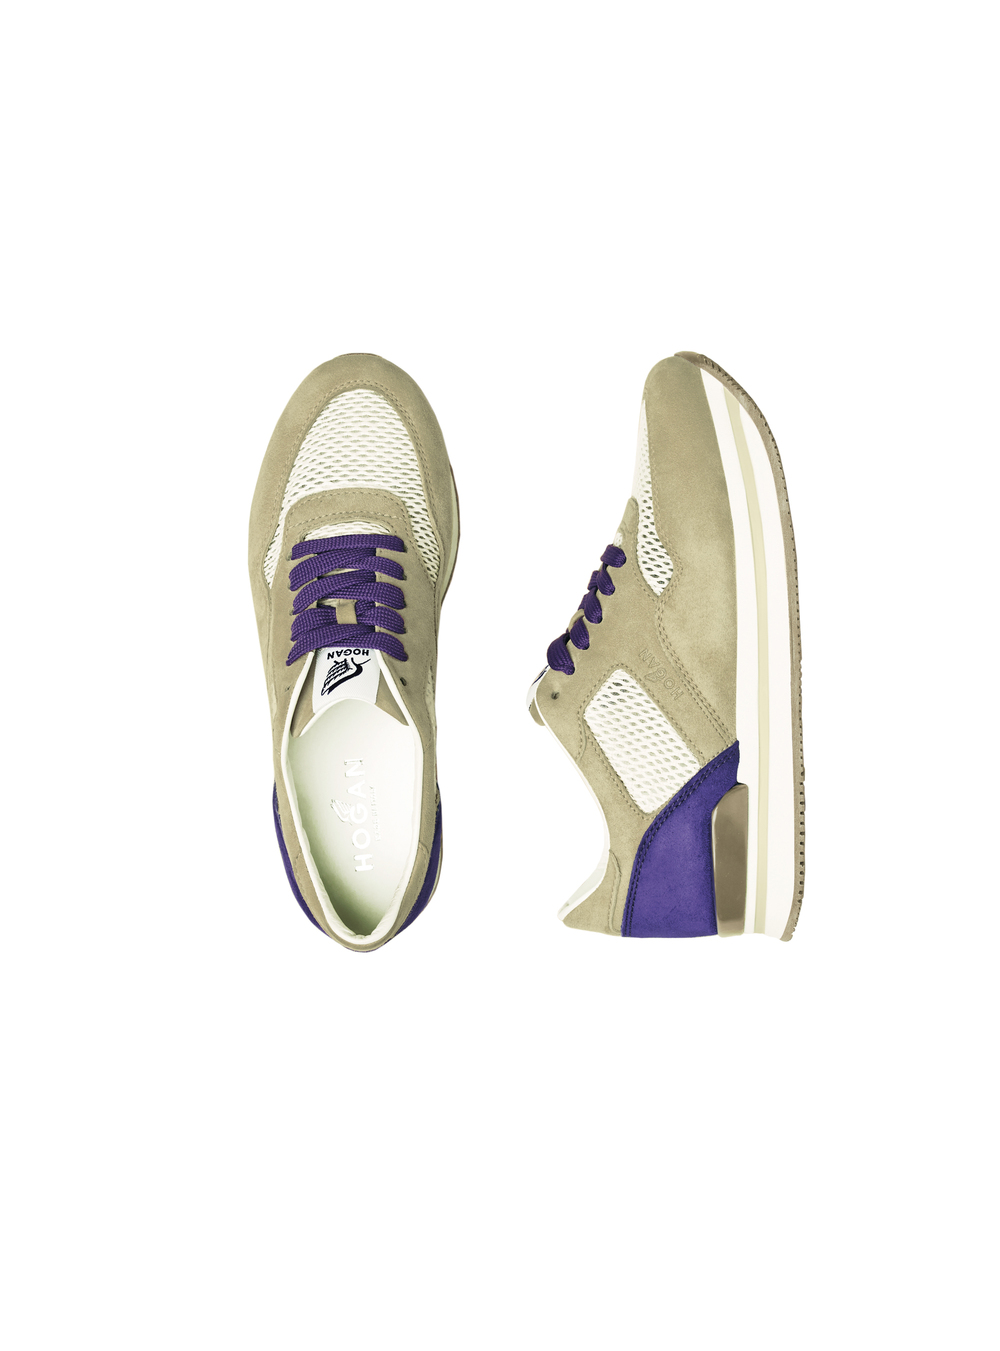 29-the H222 sneaker in natural beige and purple suede.jpg